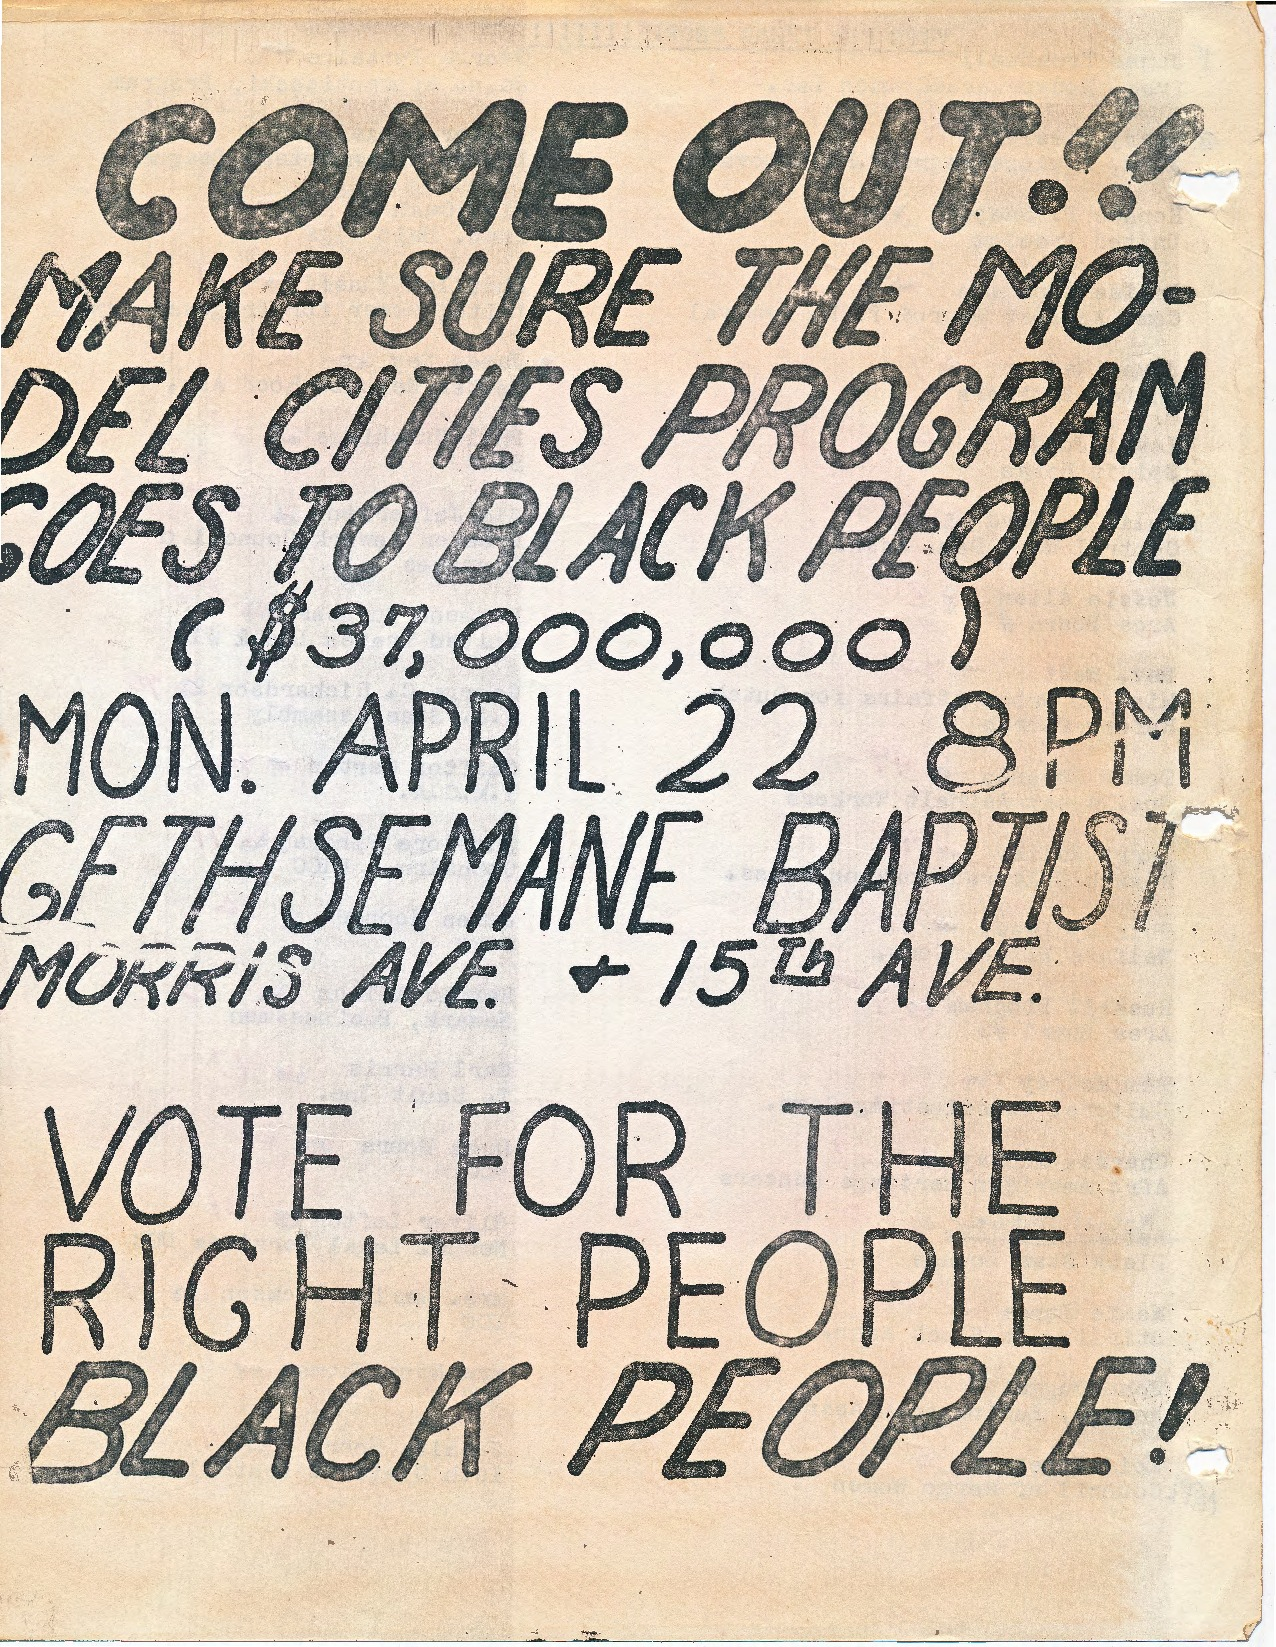 Model Cities Election Flyer